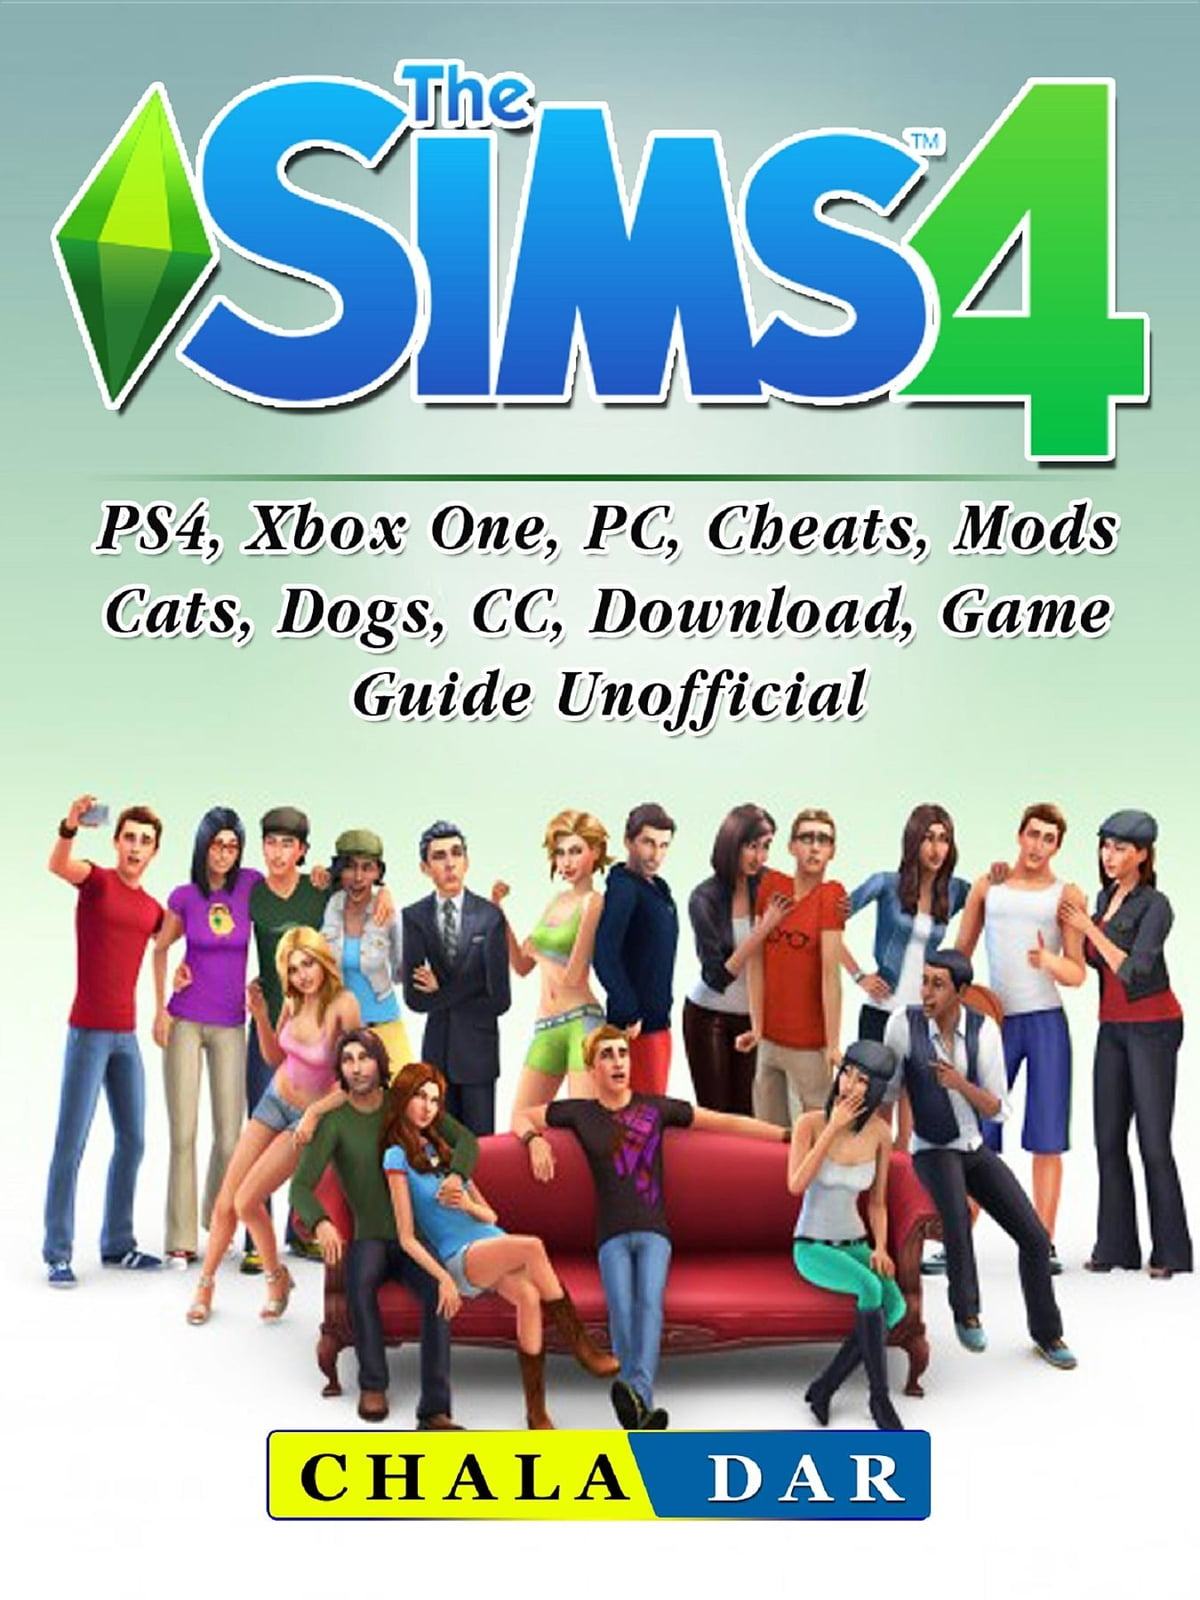 The Sims 4, PS4, Xbox One, PC, Cheats, Mods, Cats, Dogs, CC